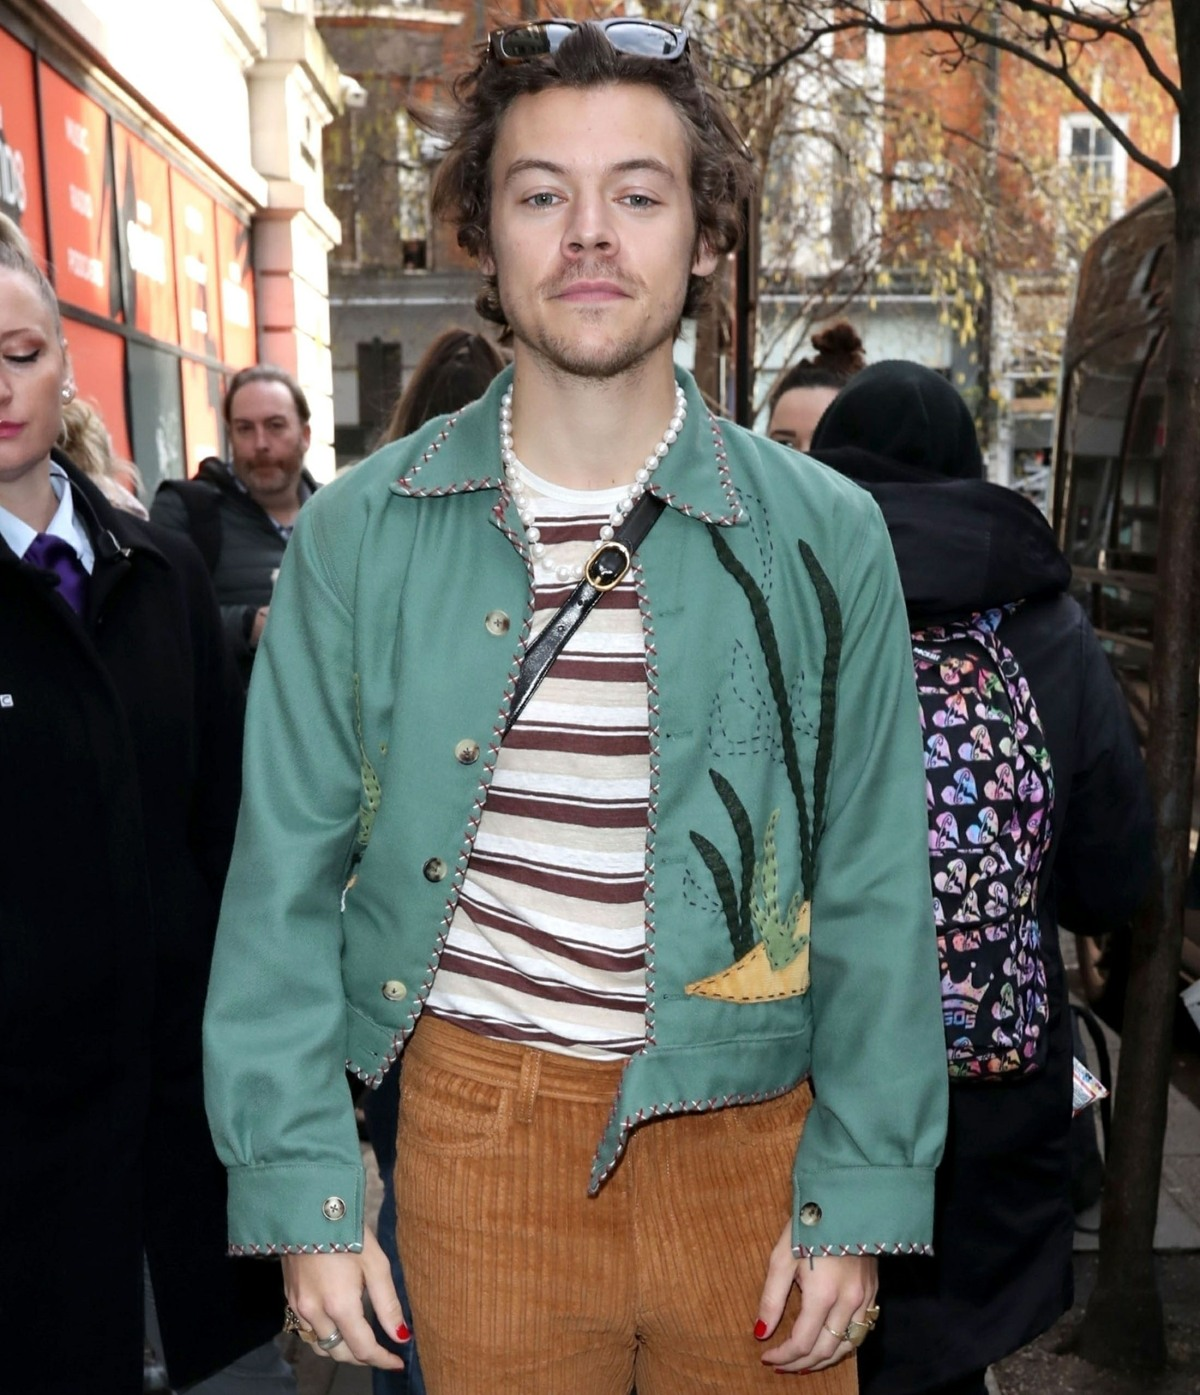 Fans wait for Former One Direction star Harry Styles outside at BBC Zoe Ball show